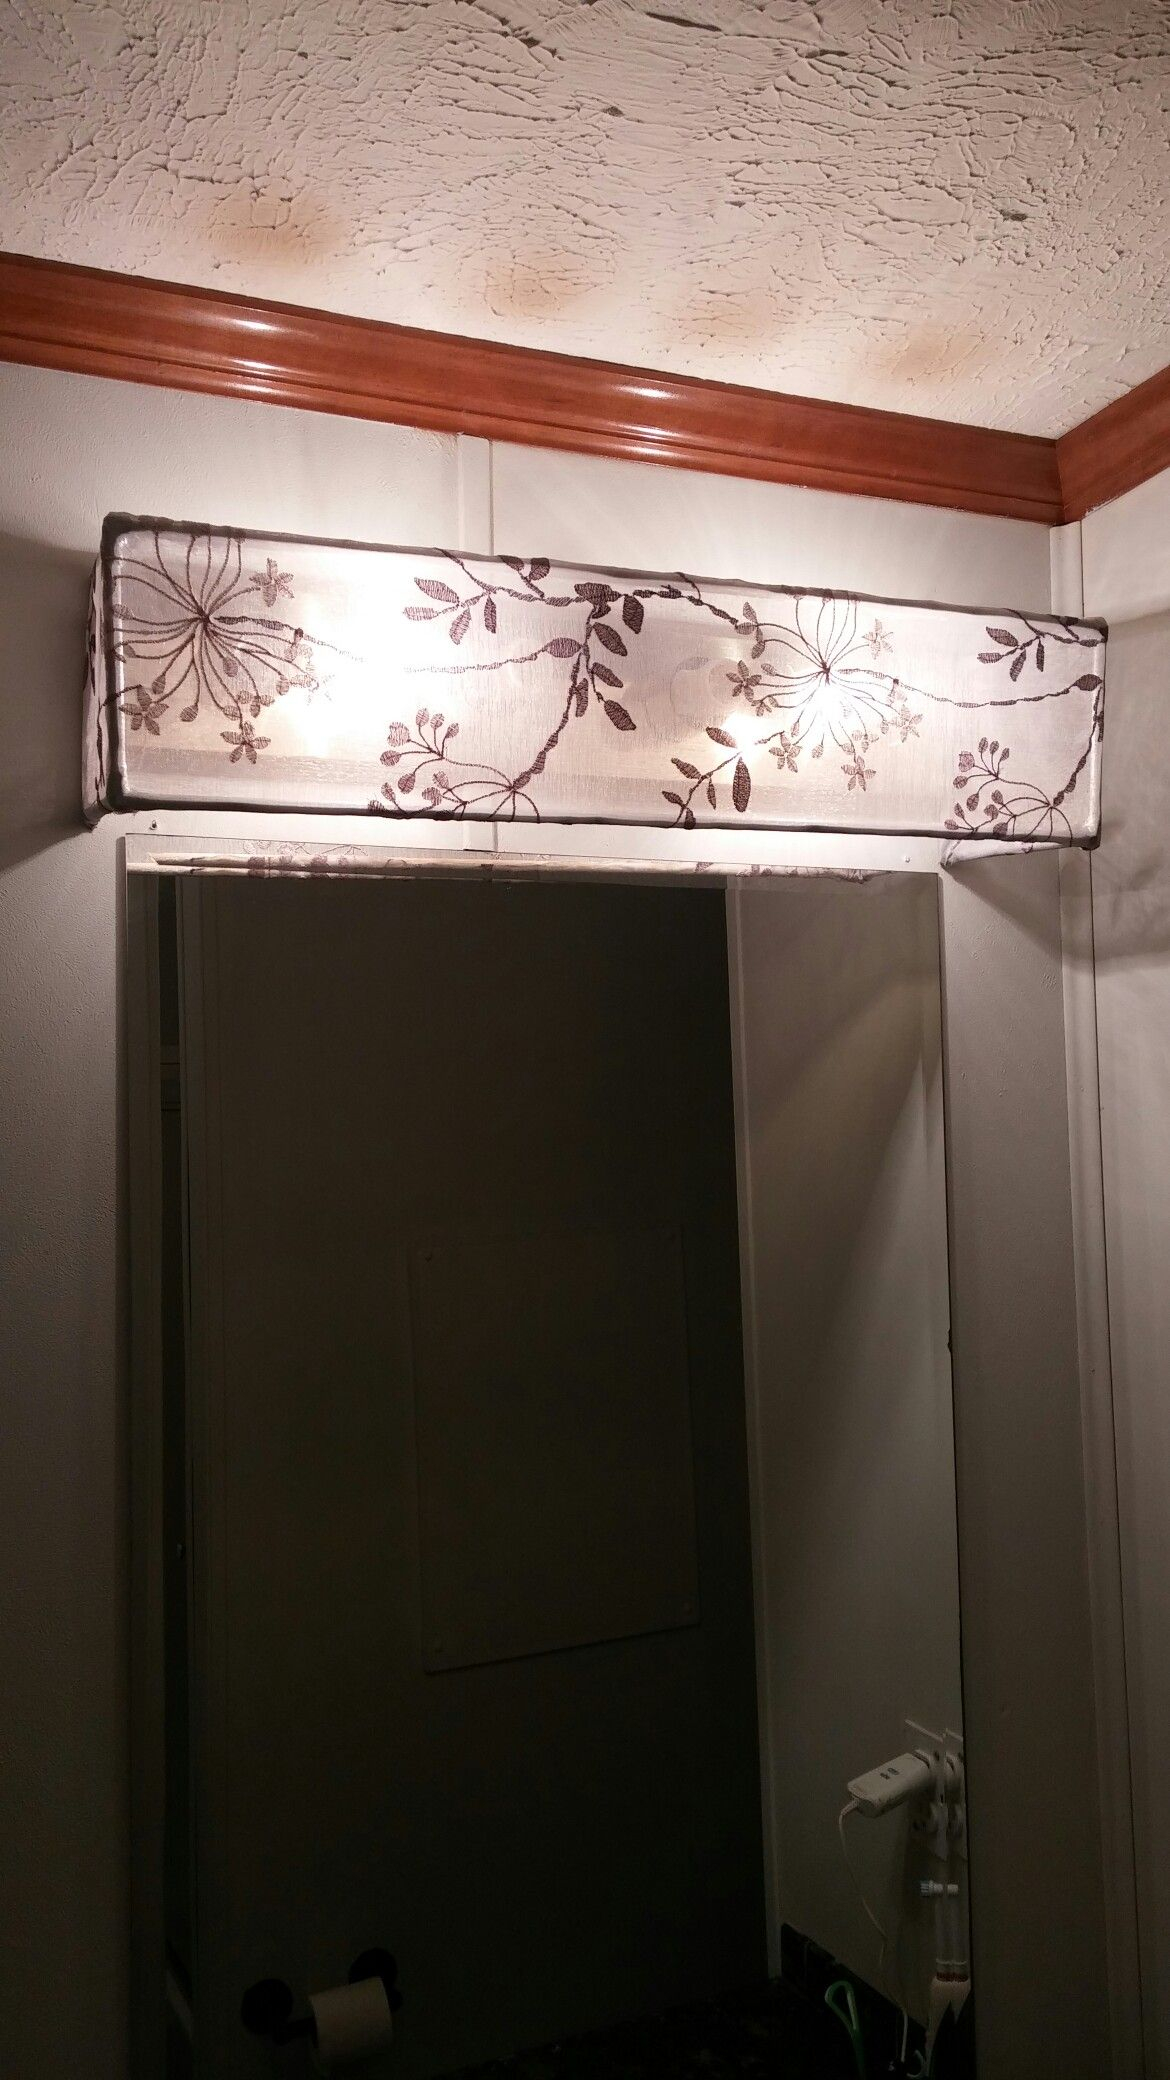 Diy Vanity Light Shade Dowel Rods And A Curtain Sheer Hot in sizing 1170 X 2080